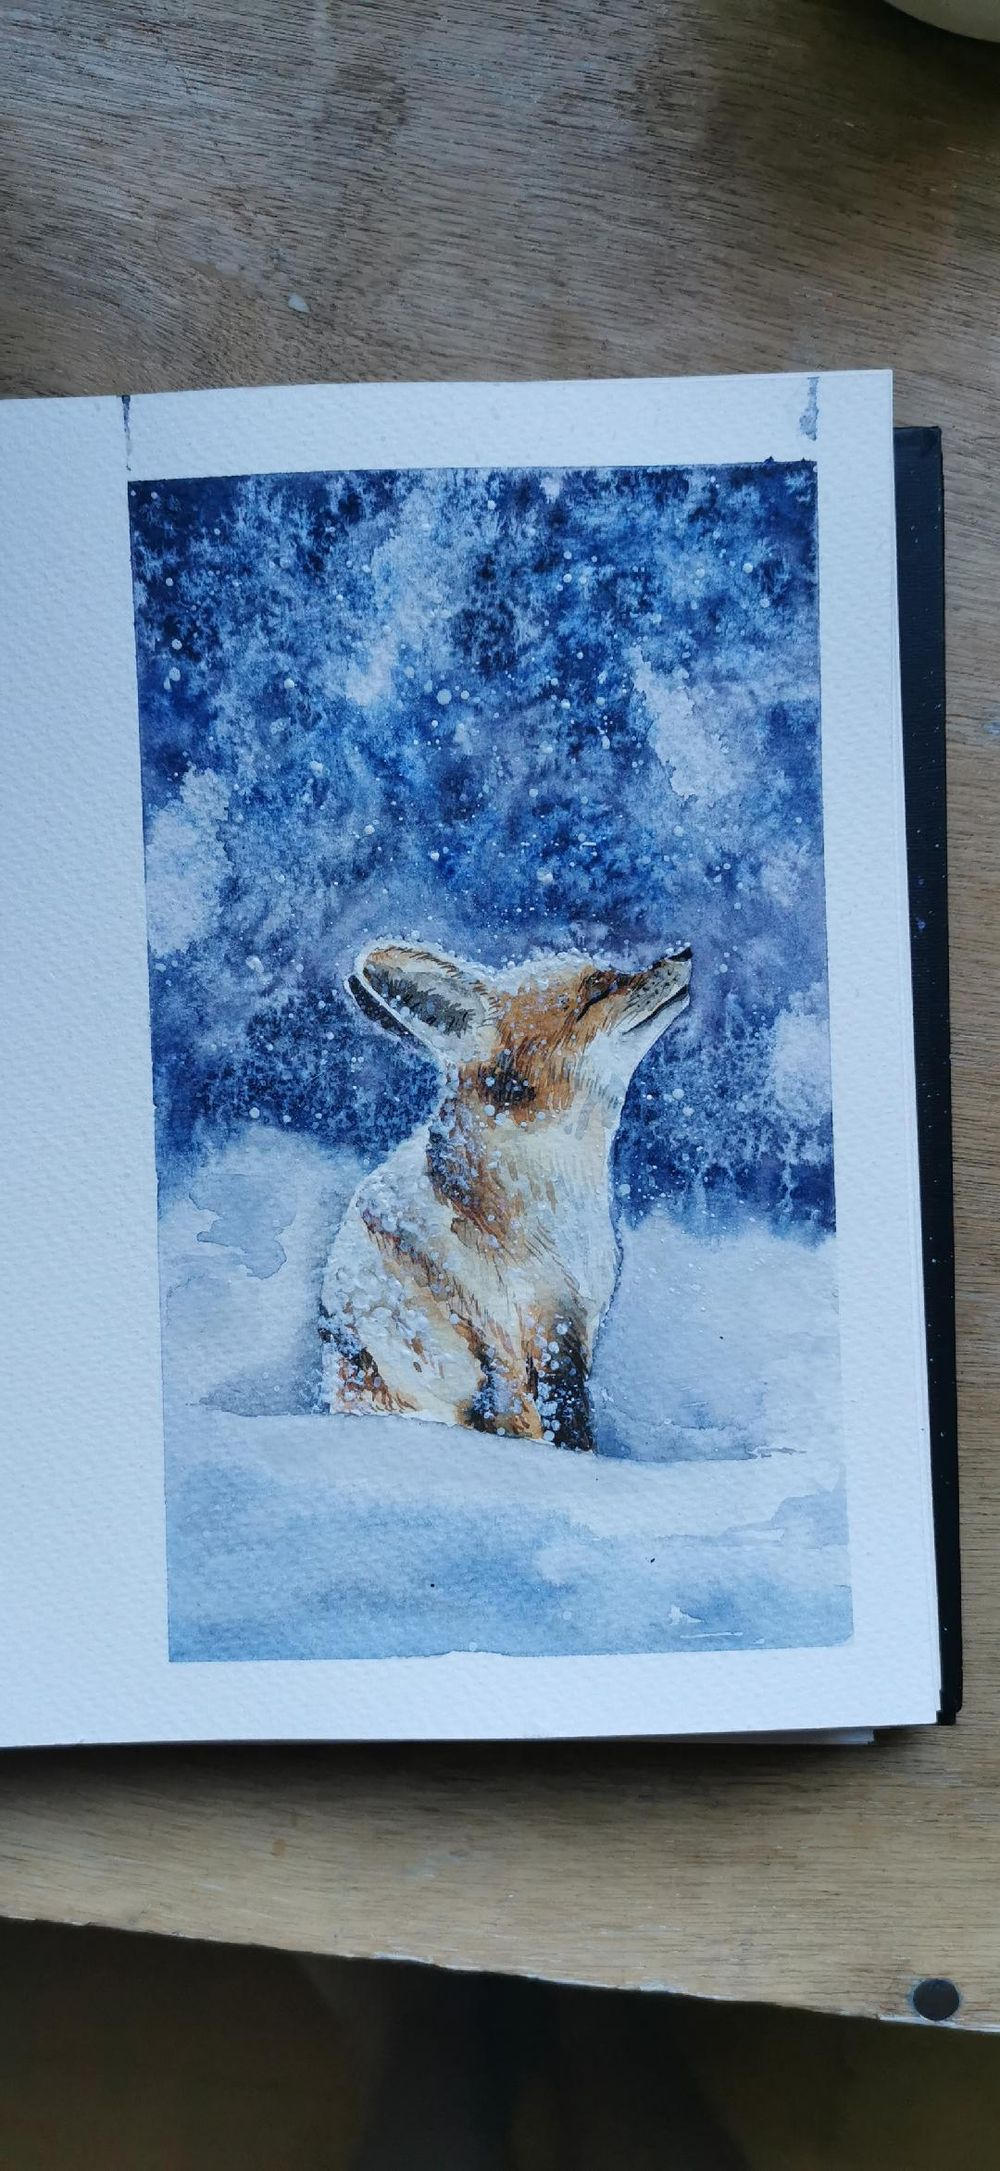 Snowy fox - image 2 - student project